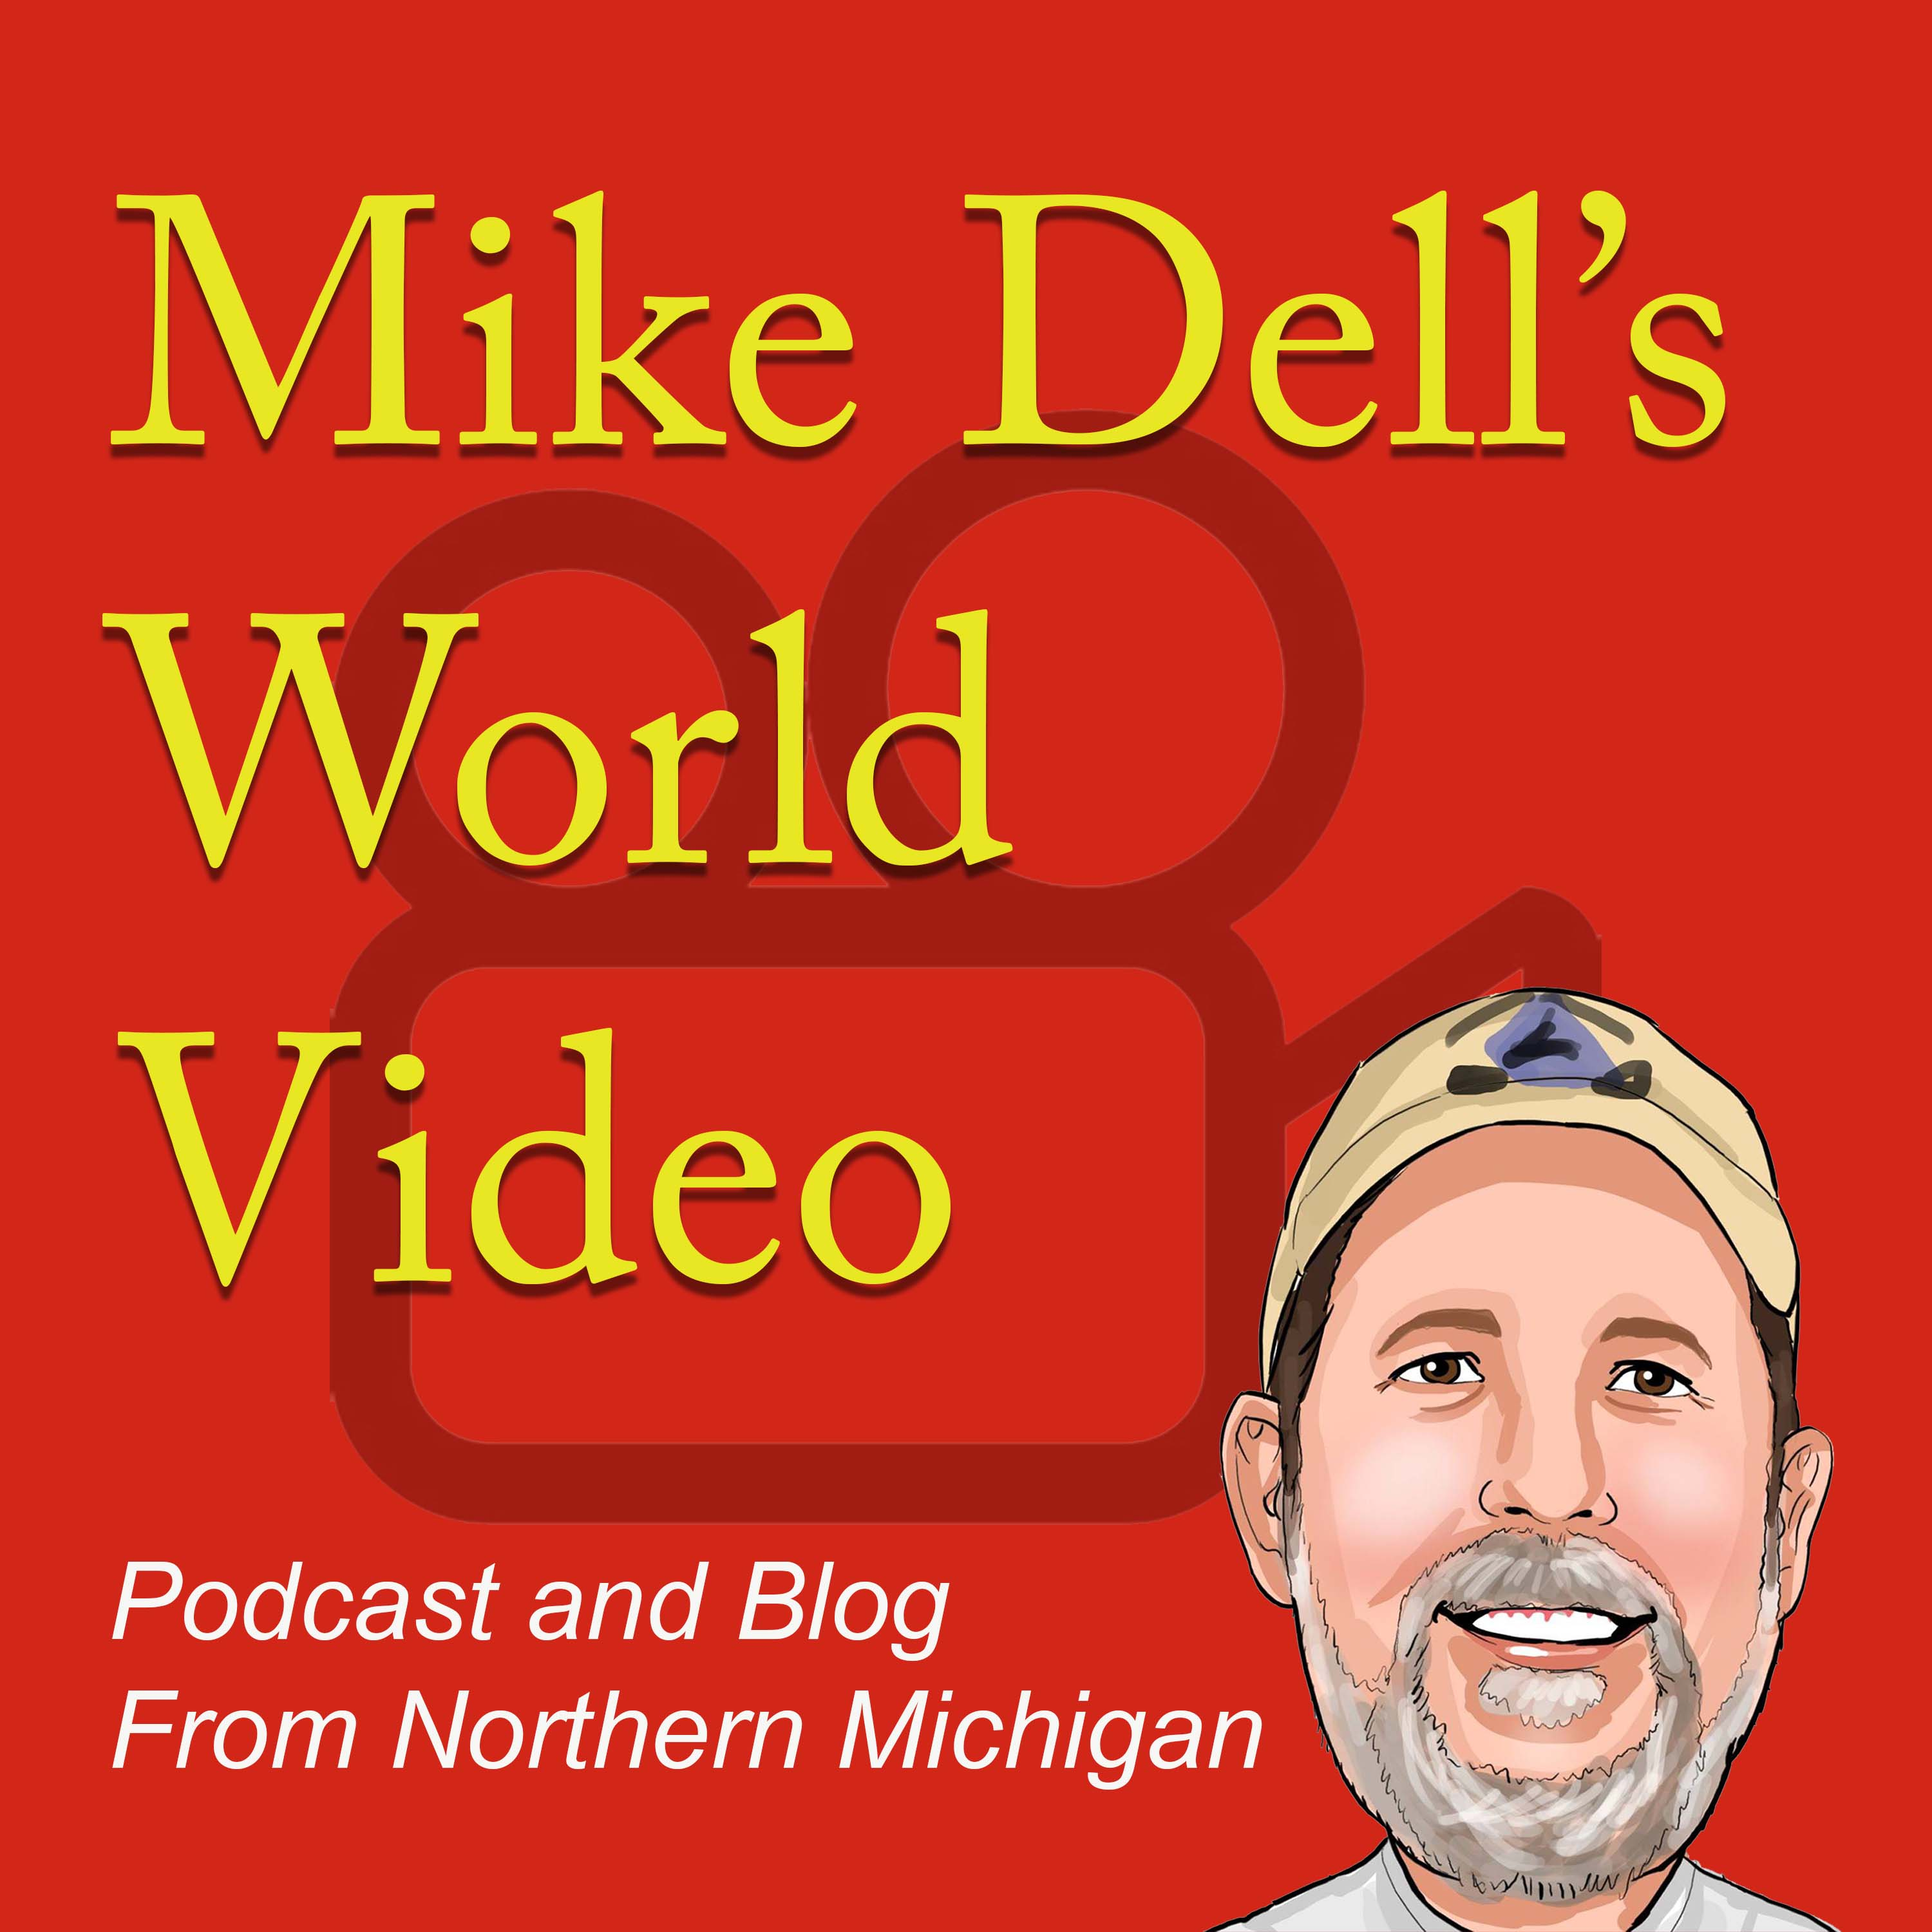 Mike Dell's World Video